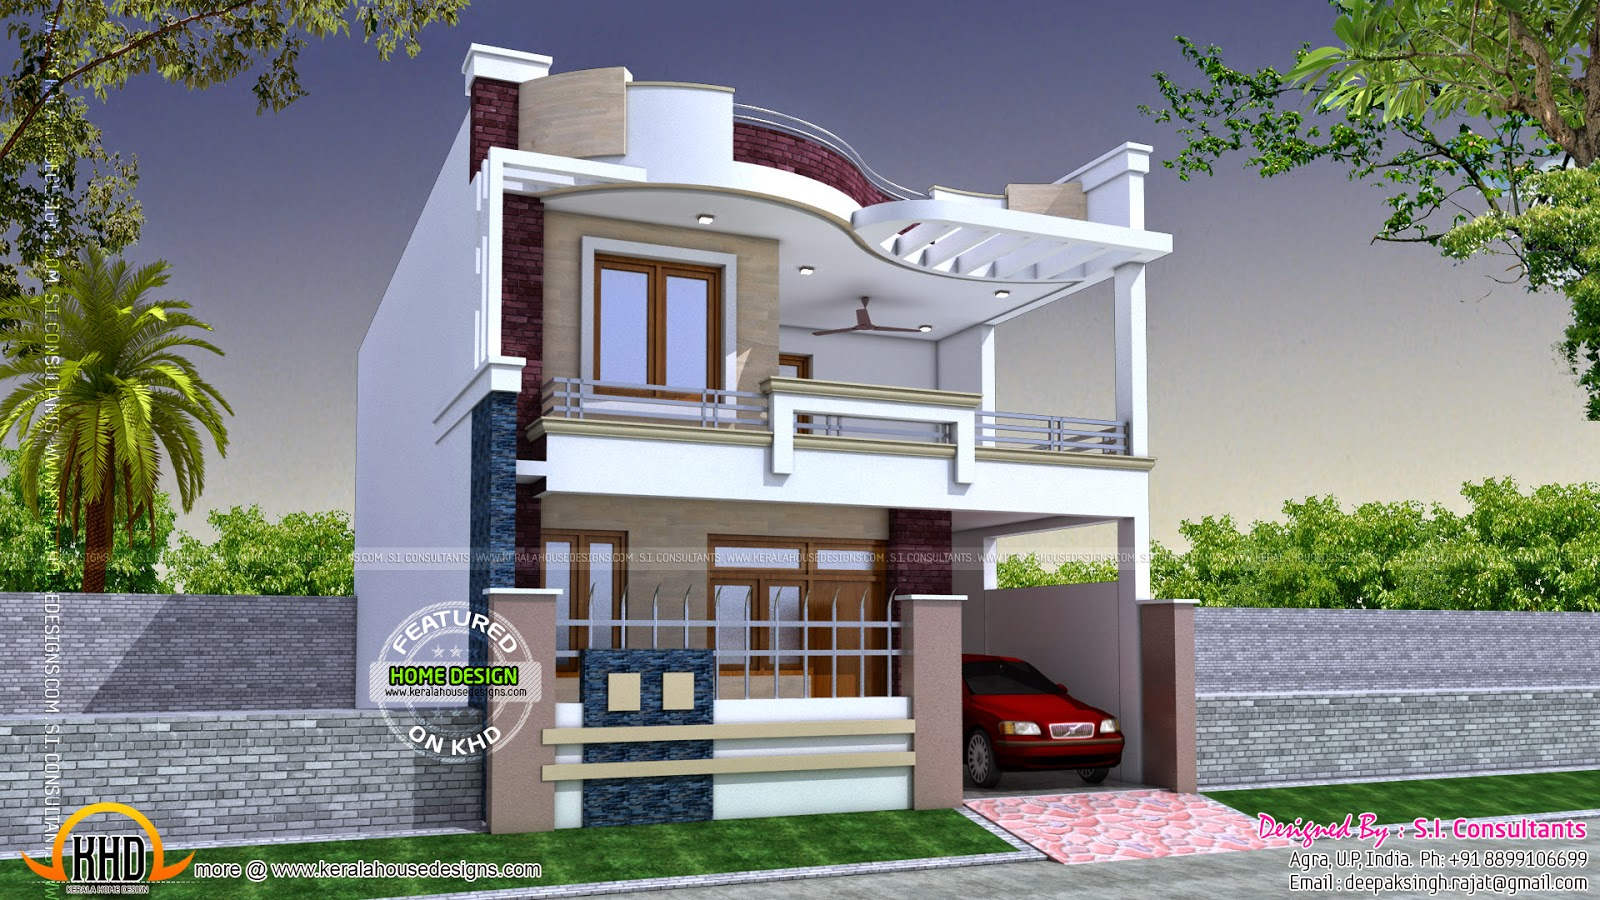 Modern indian home design kerala home design and floor plans for Home design front side